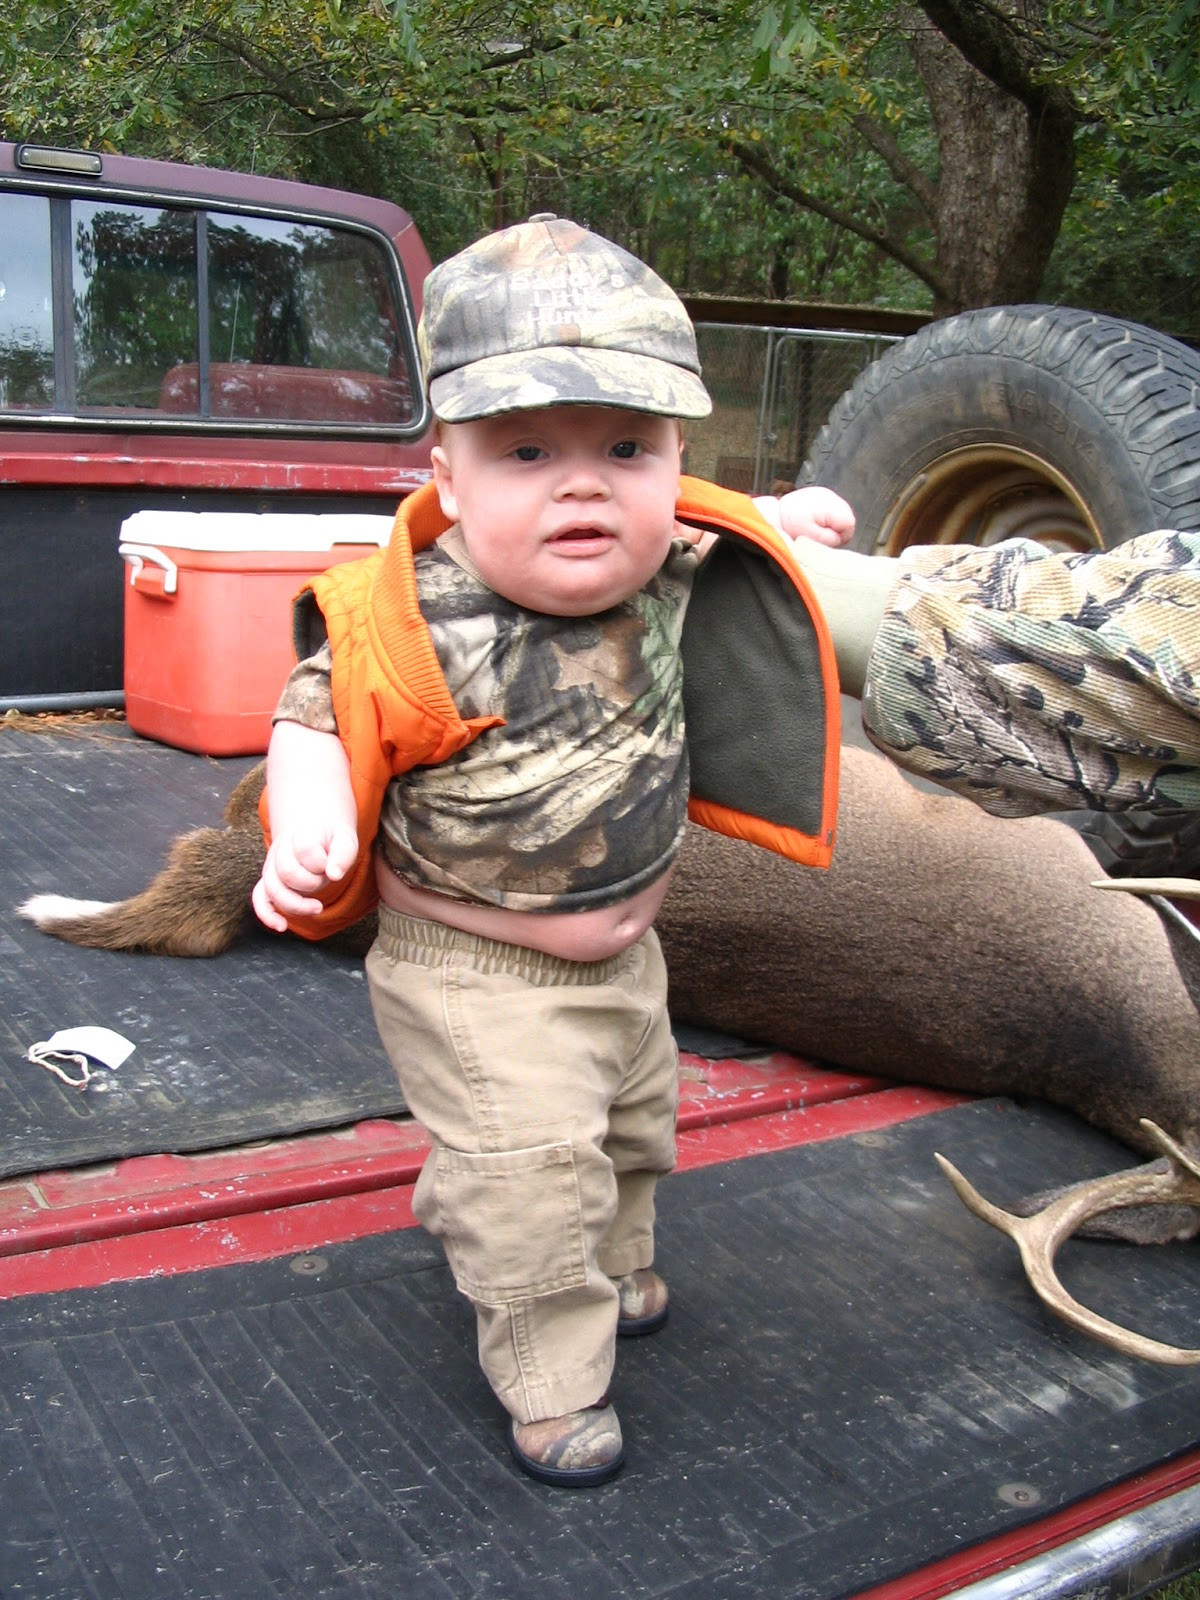 Since His First Day Of Deer Season In 2005 When He Was 3 Months Old Hunting Has Been A BIG Part Life B Started Taking T About 18